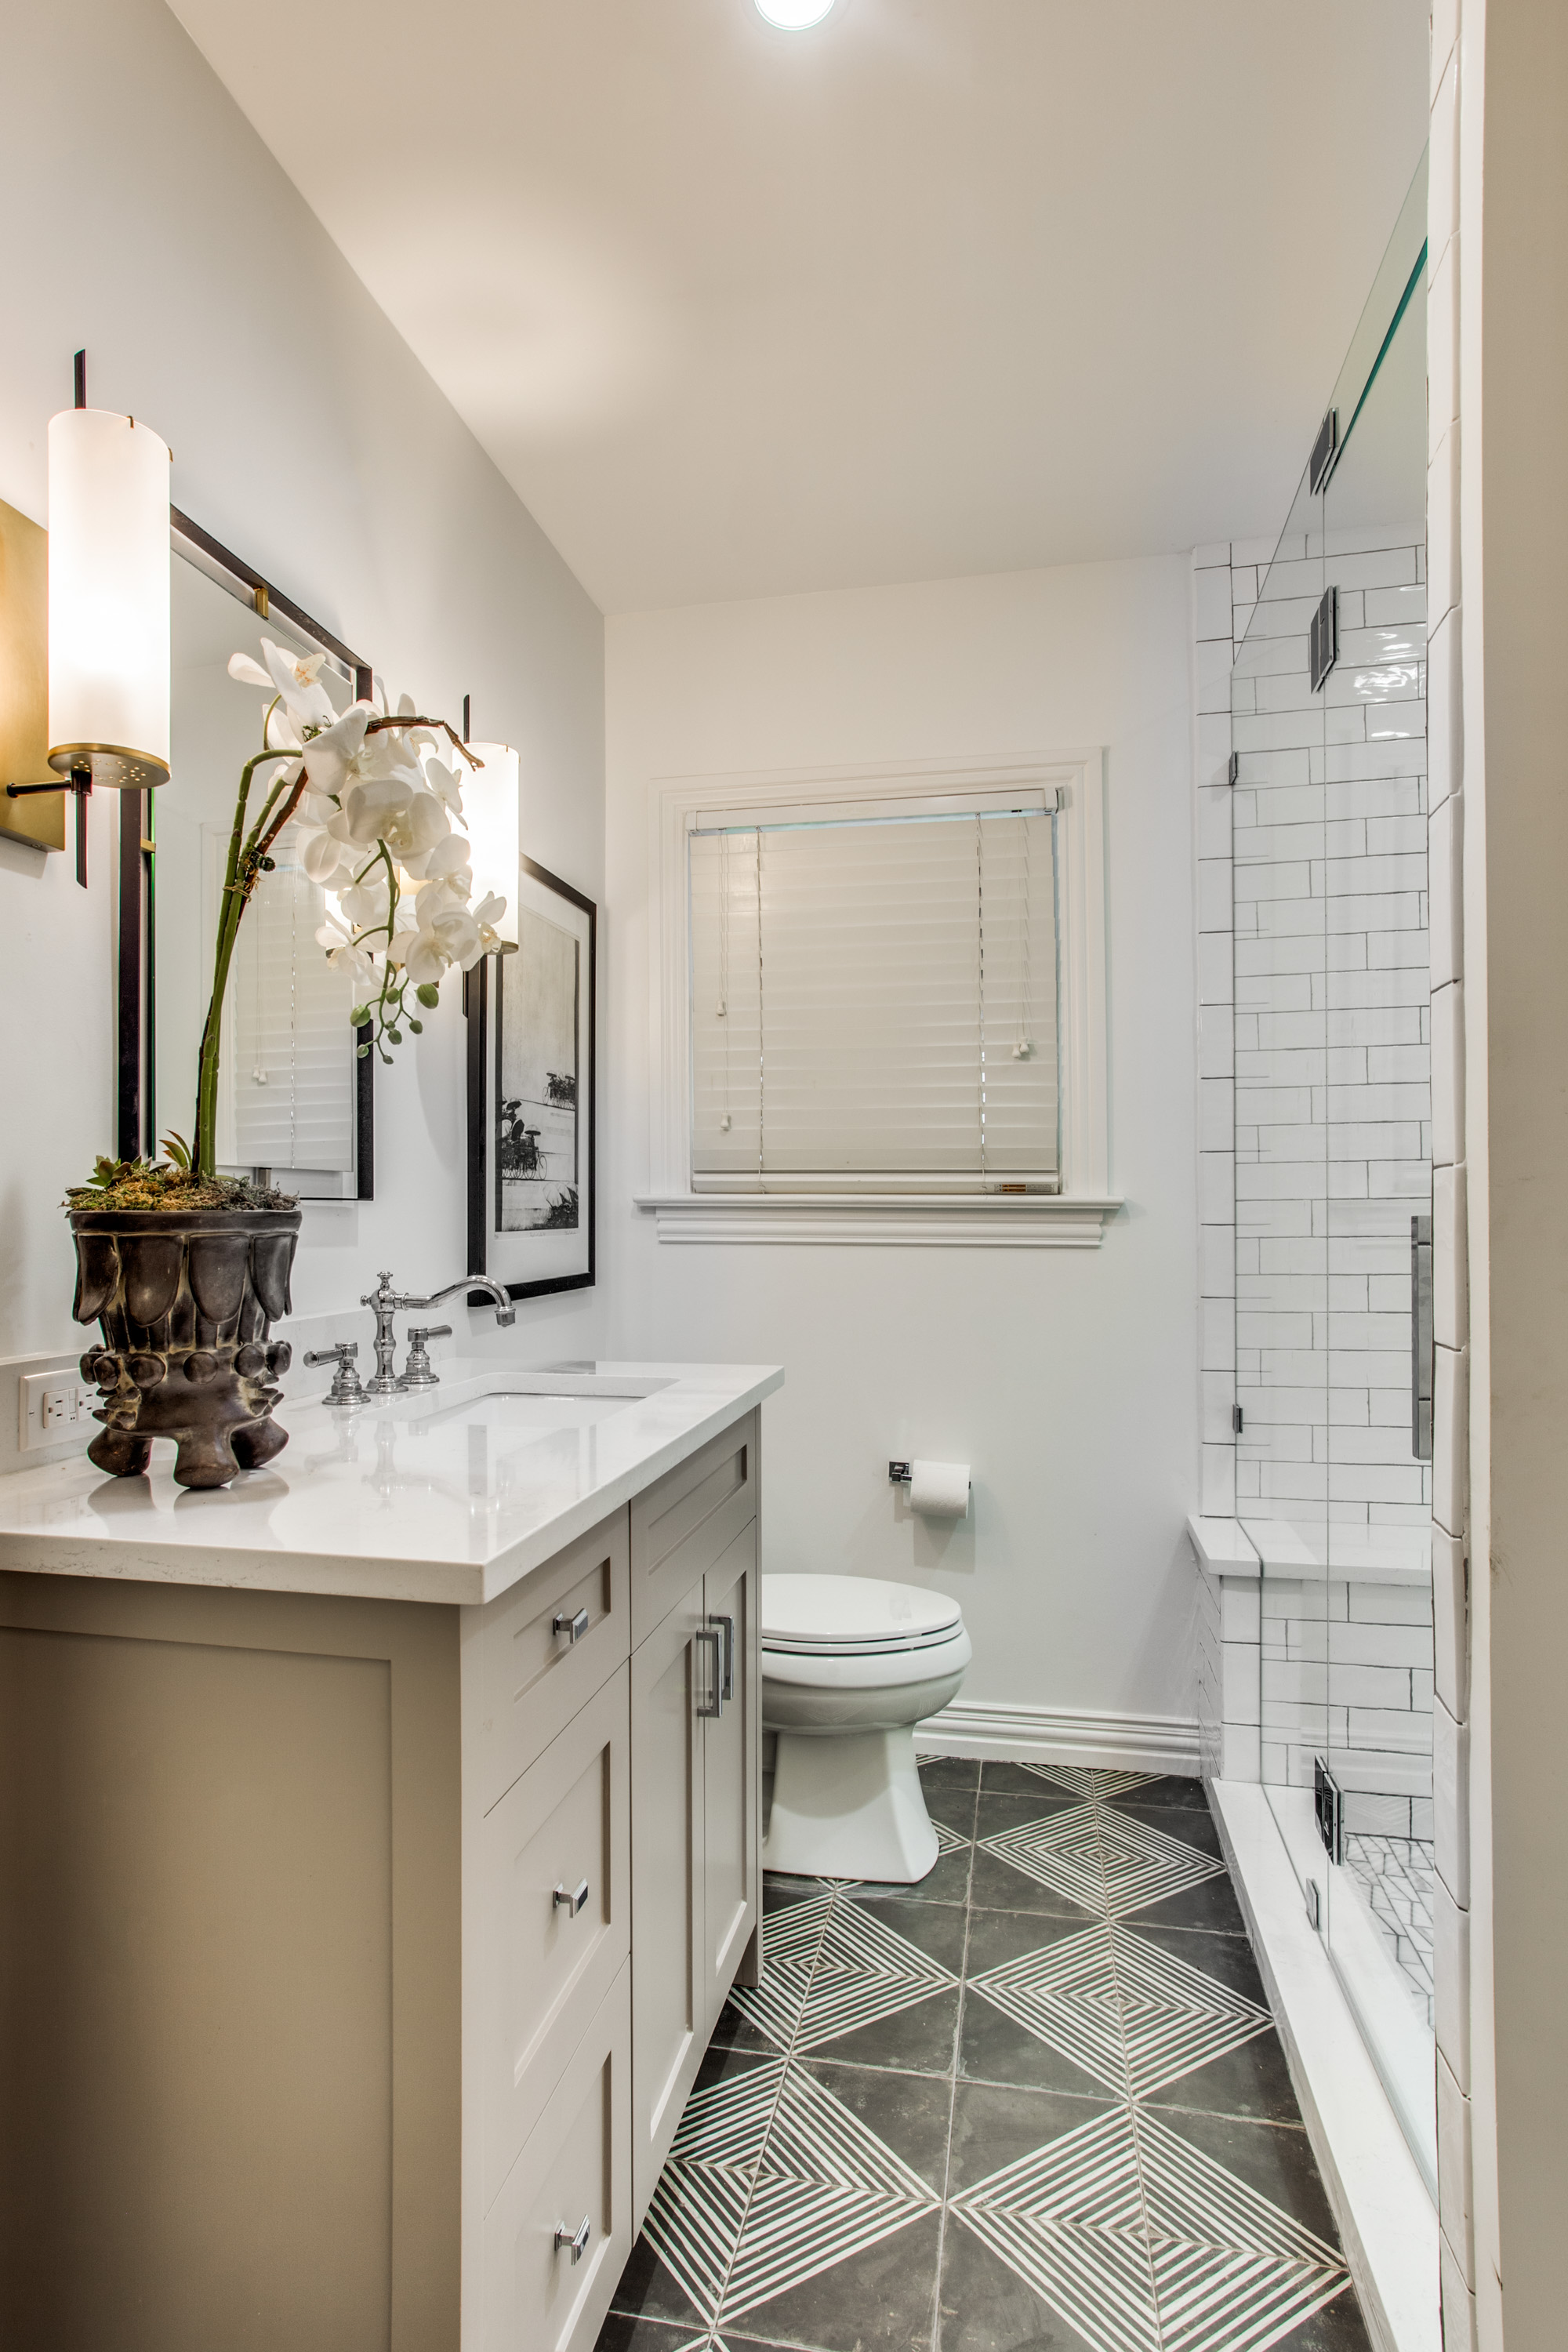 3816-amherst-ave-dallas-tx-High-Res-4.jpg